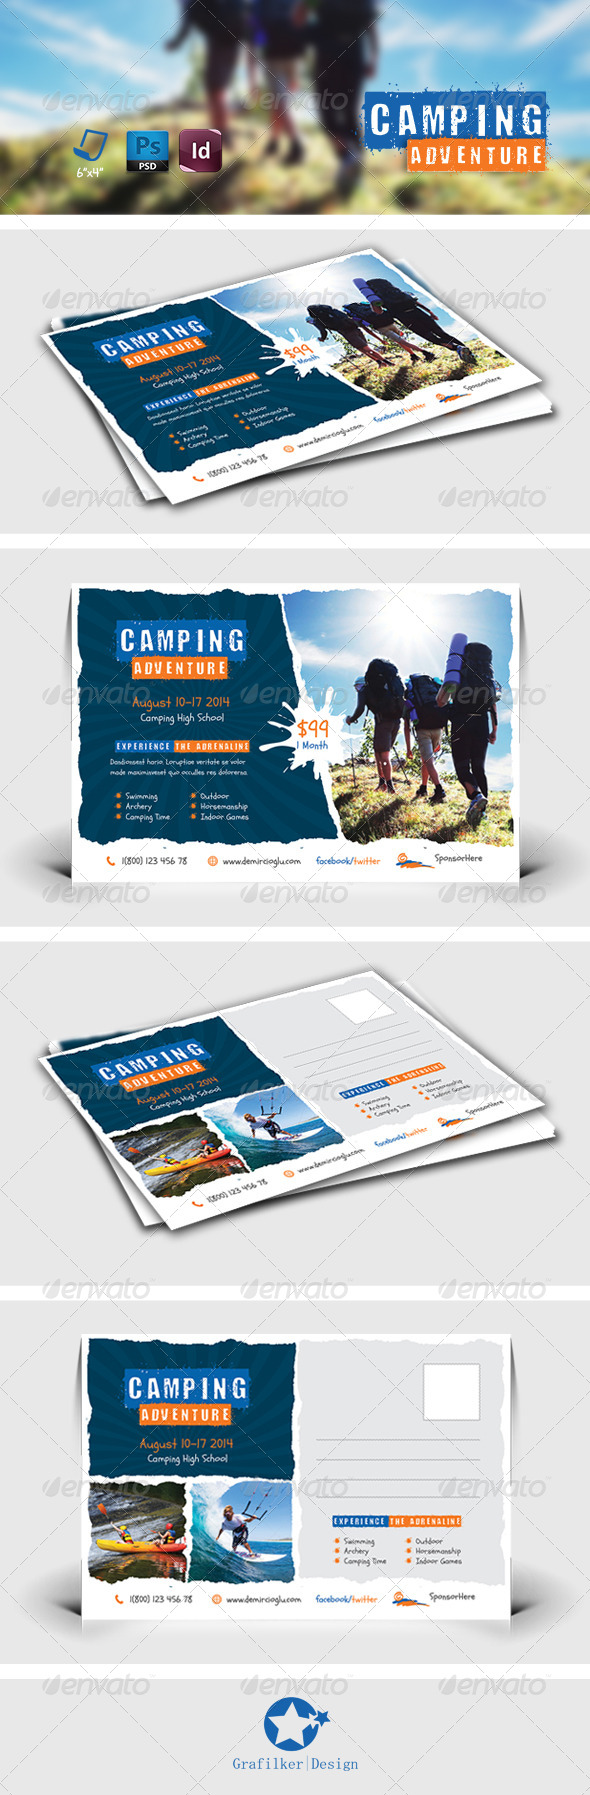 GraphicRiver Camping Adventure Postcard Templates 7904249